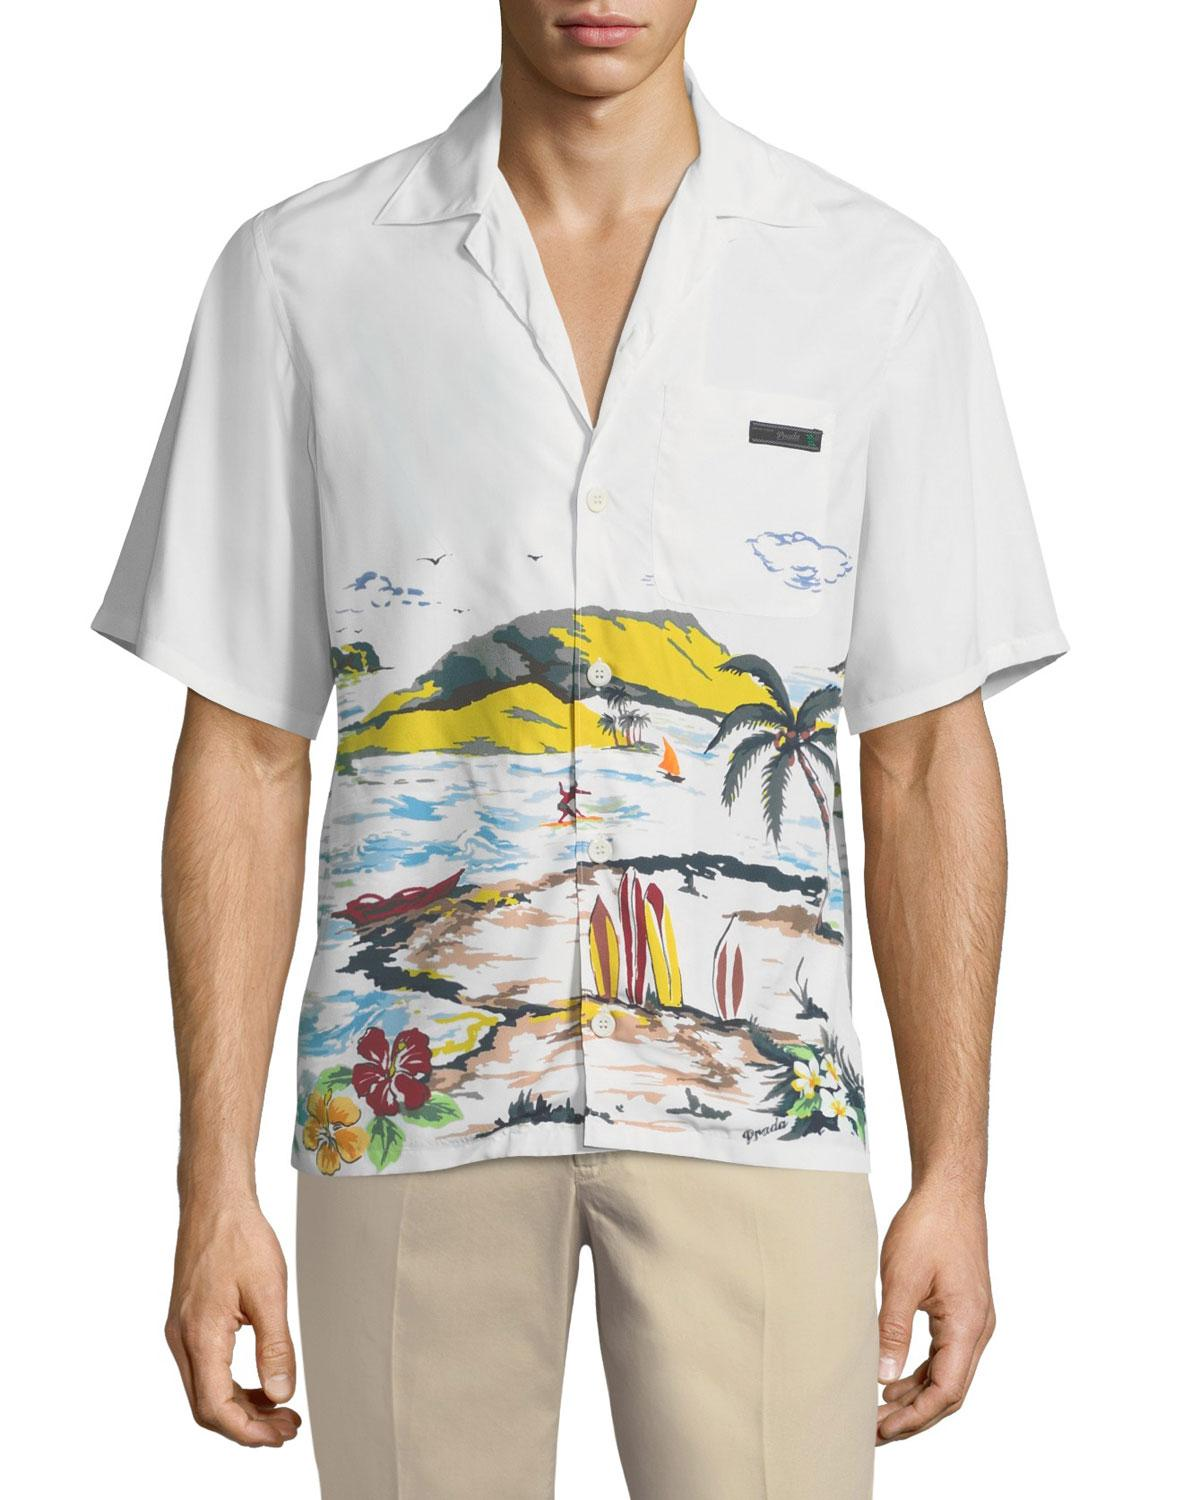 e09cbbbaf Bowling Shirts For Sale Canada – Rockwall Auction